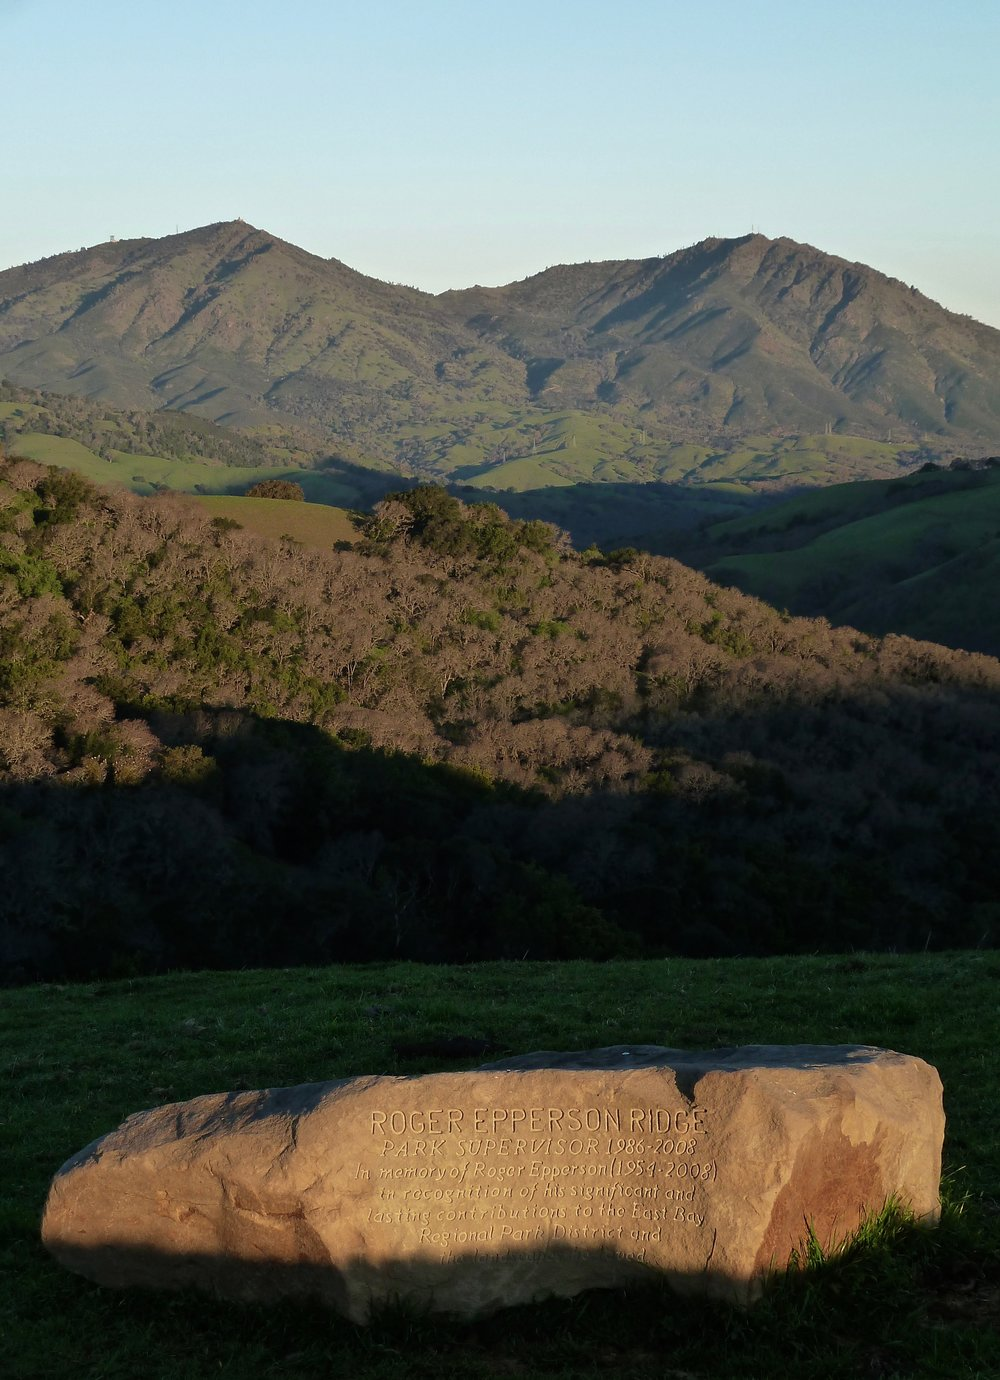 Sunrise, Roger Epperson Ridge. Epperson supervised Round Valley, Black Diamond Mines and Morgan Territory for the East Bay Regional Park District. You might not have heard of him before now, but if those parks occupy a special place in your heart, you've seen his handiwork all over the place.